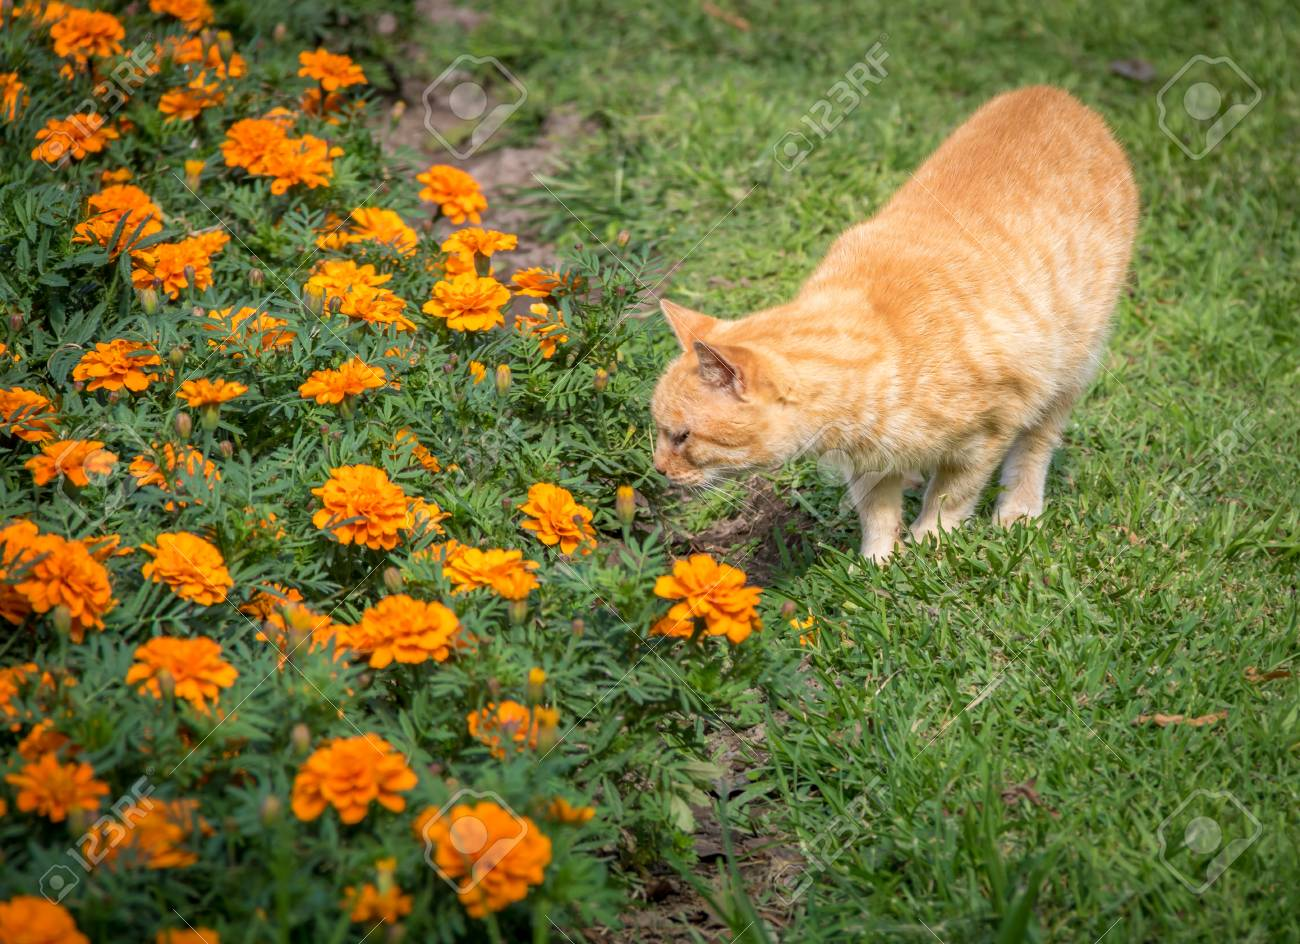 cat and orange flowers lima peru stock photo picture and royalty